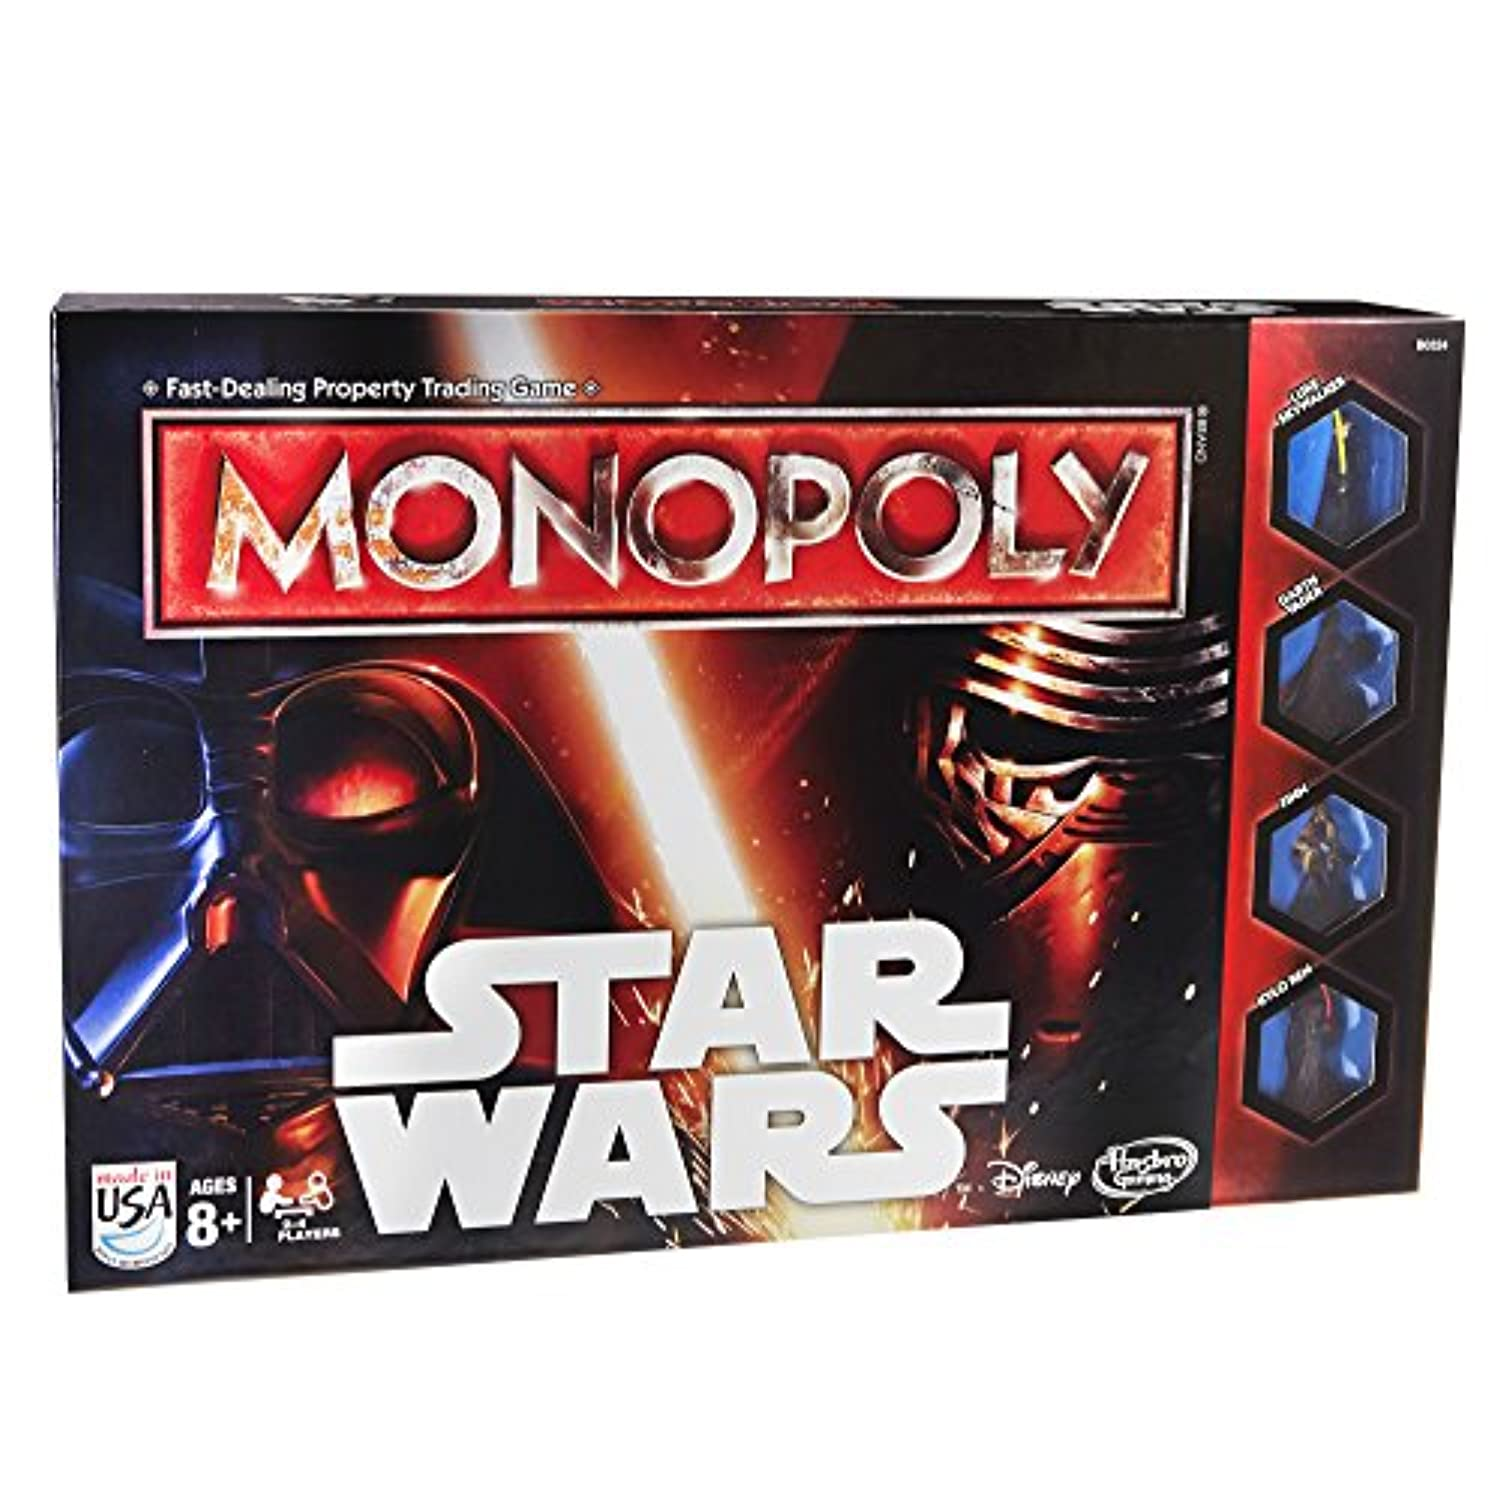 [ハスブロ]Hasbro Monopoly Game Star Wars B0324 [並行輸入品]